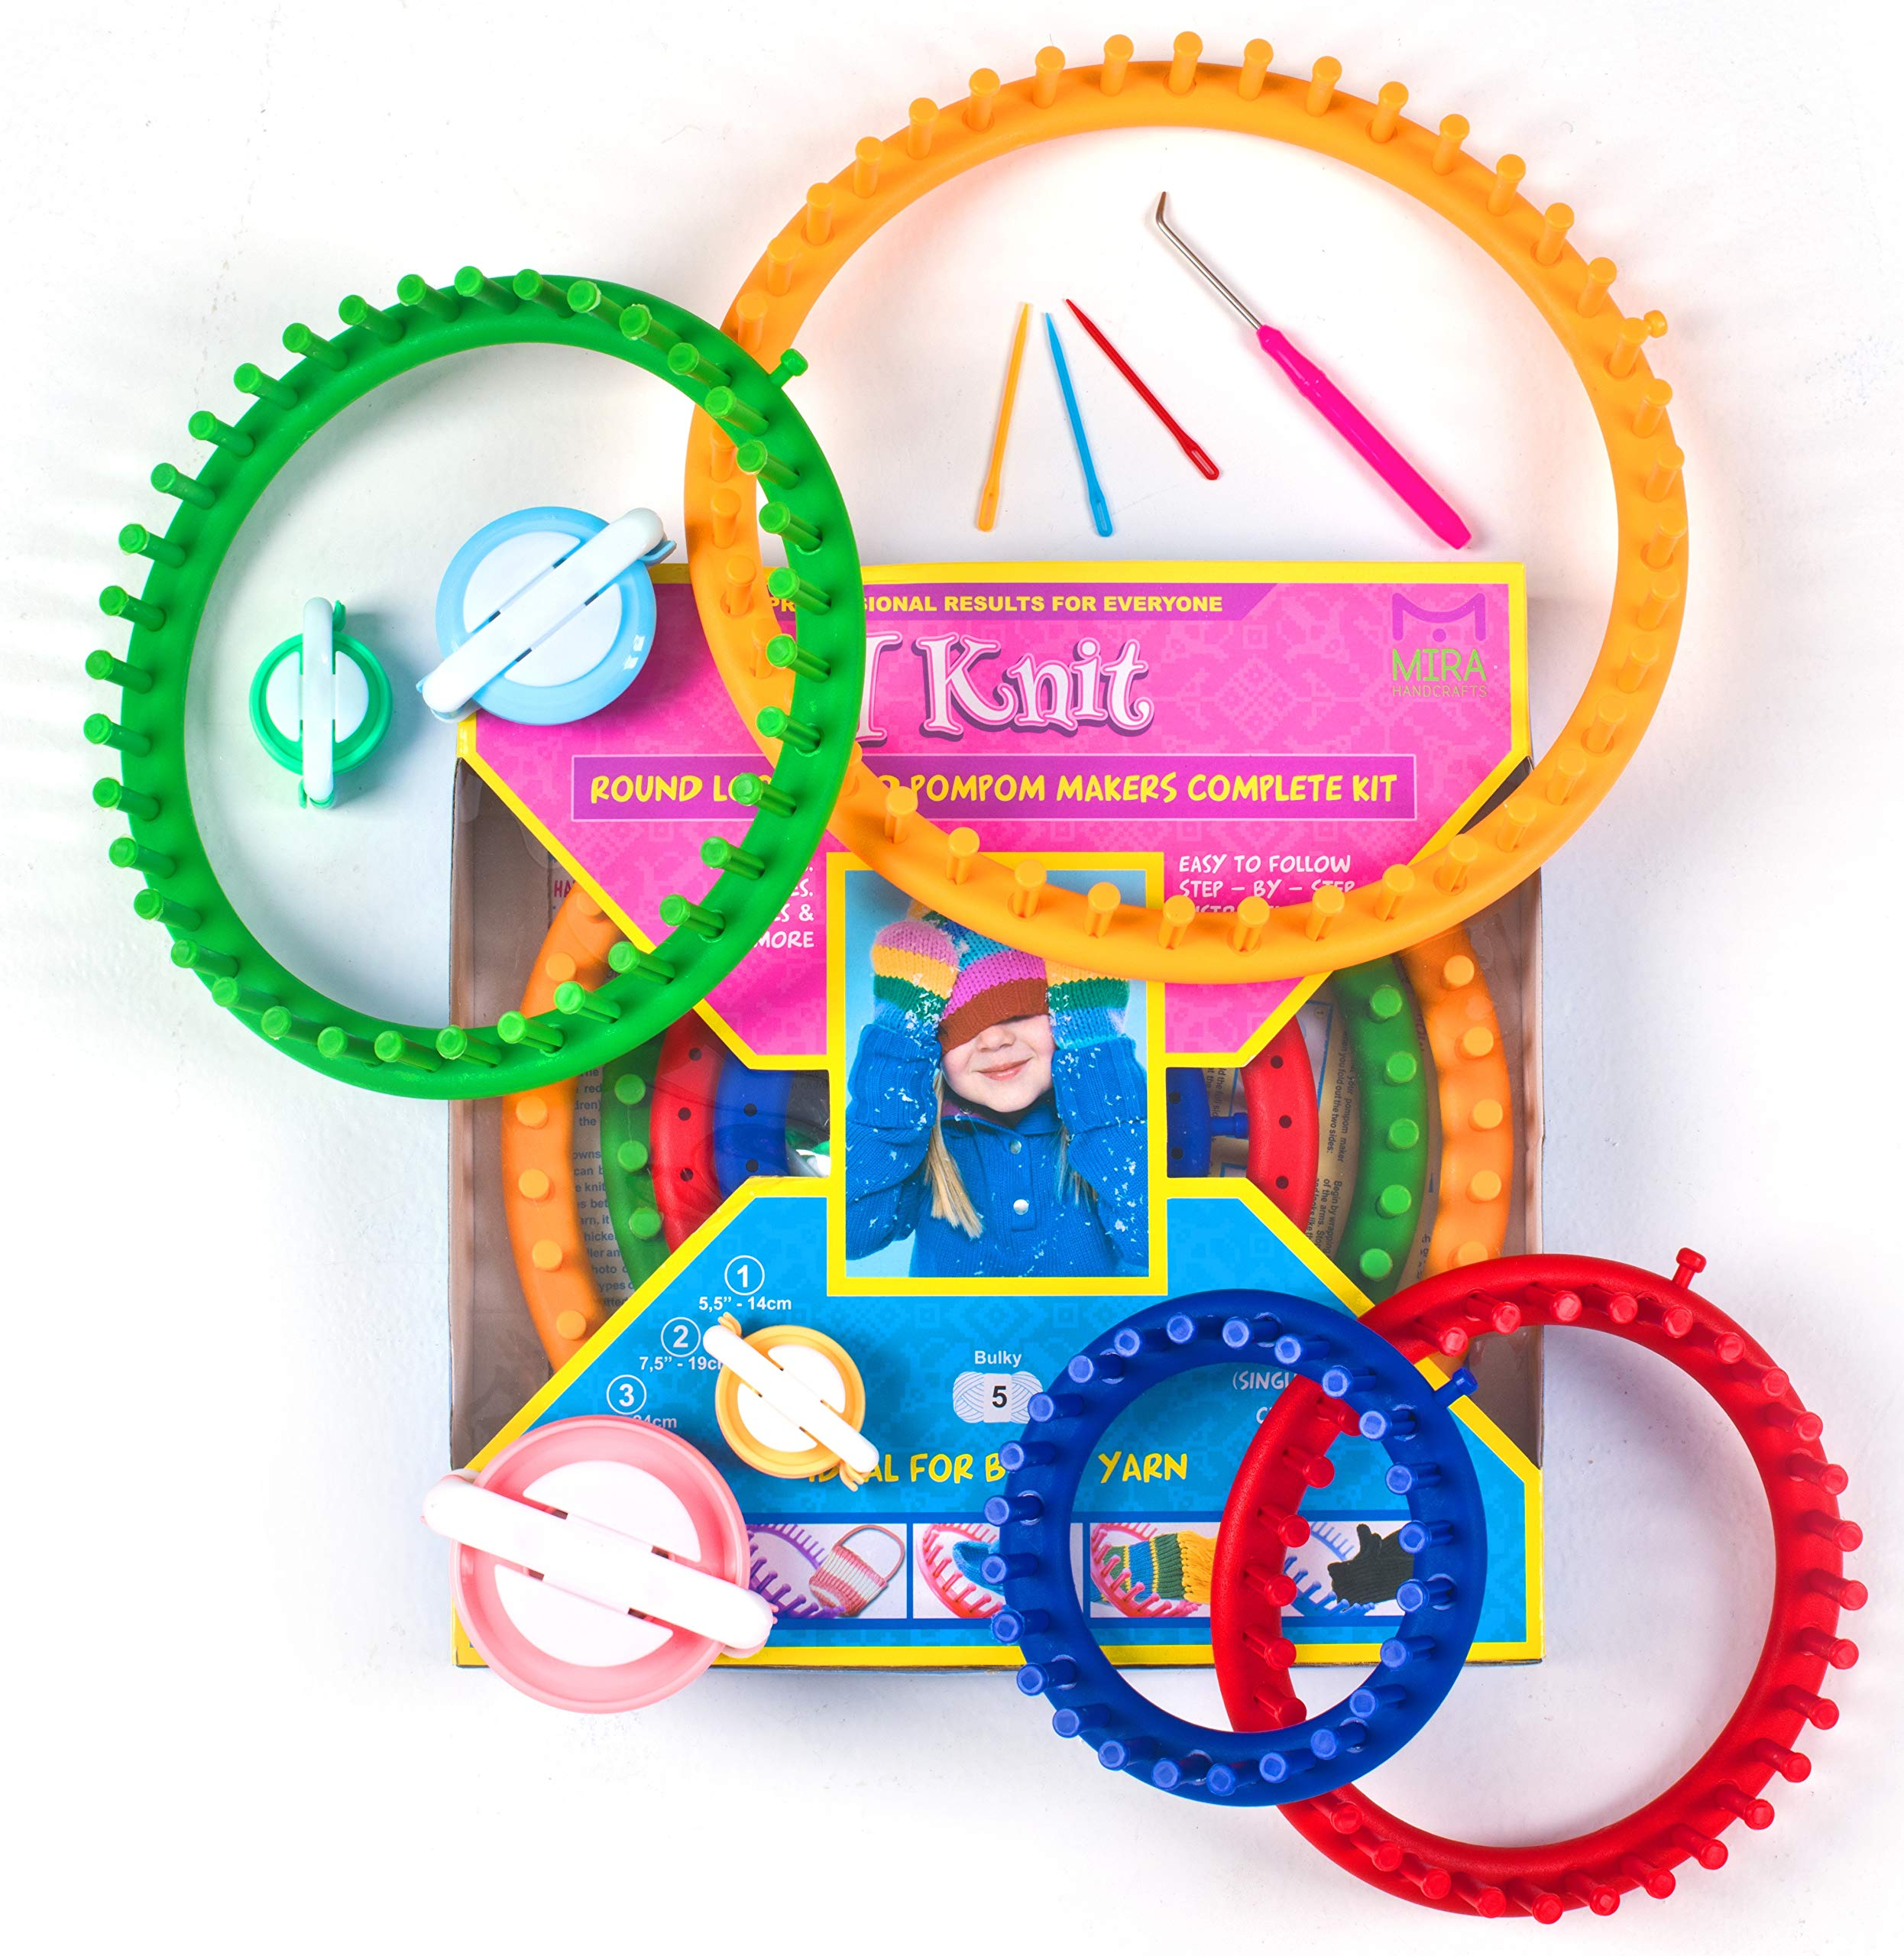 Mira Handcrafts Complete Round Knitting Loom Kit | 4 Knitting Circle Looms, 4 Pompom Makers, 3 Plastic Needles, 1 Soft Grip Pick | Perfect Crochet Craft Kit for Beginners by Mira HandCrafts